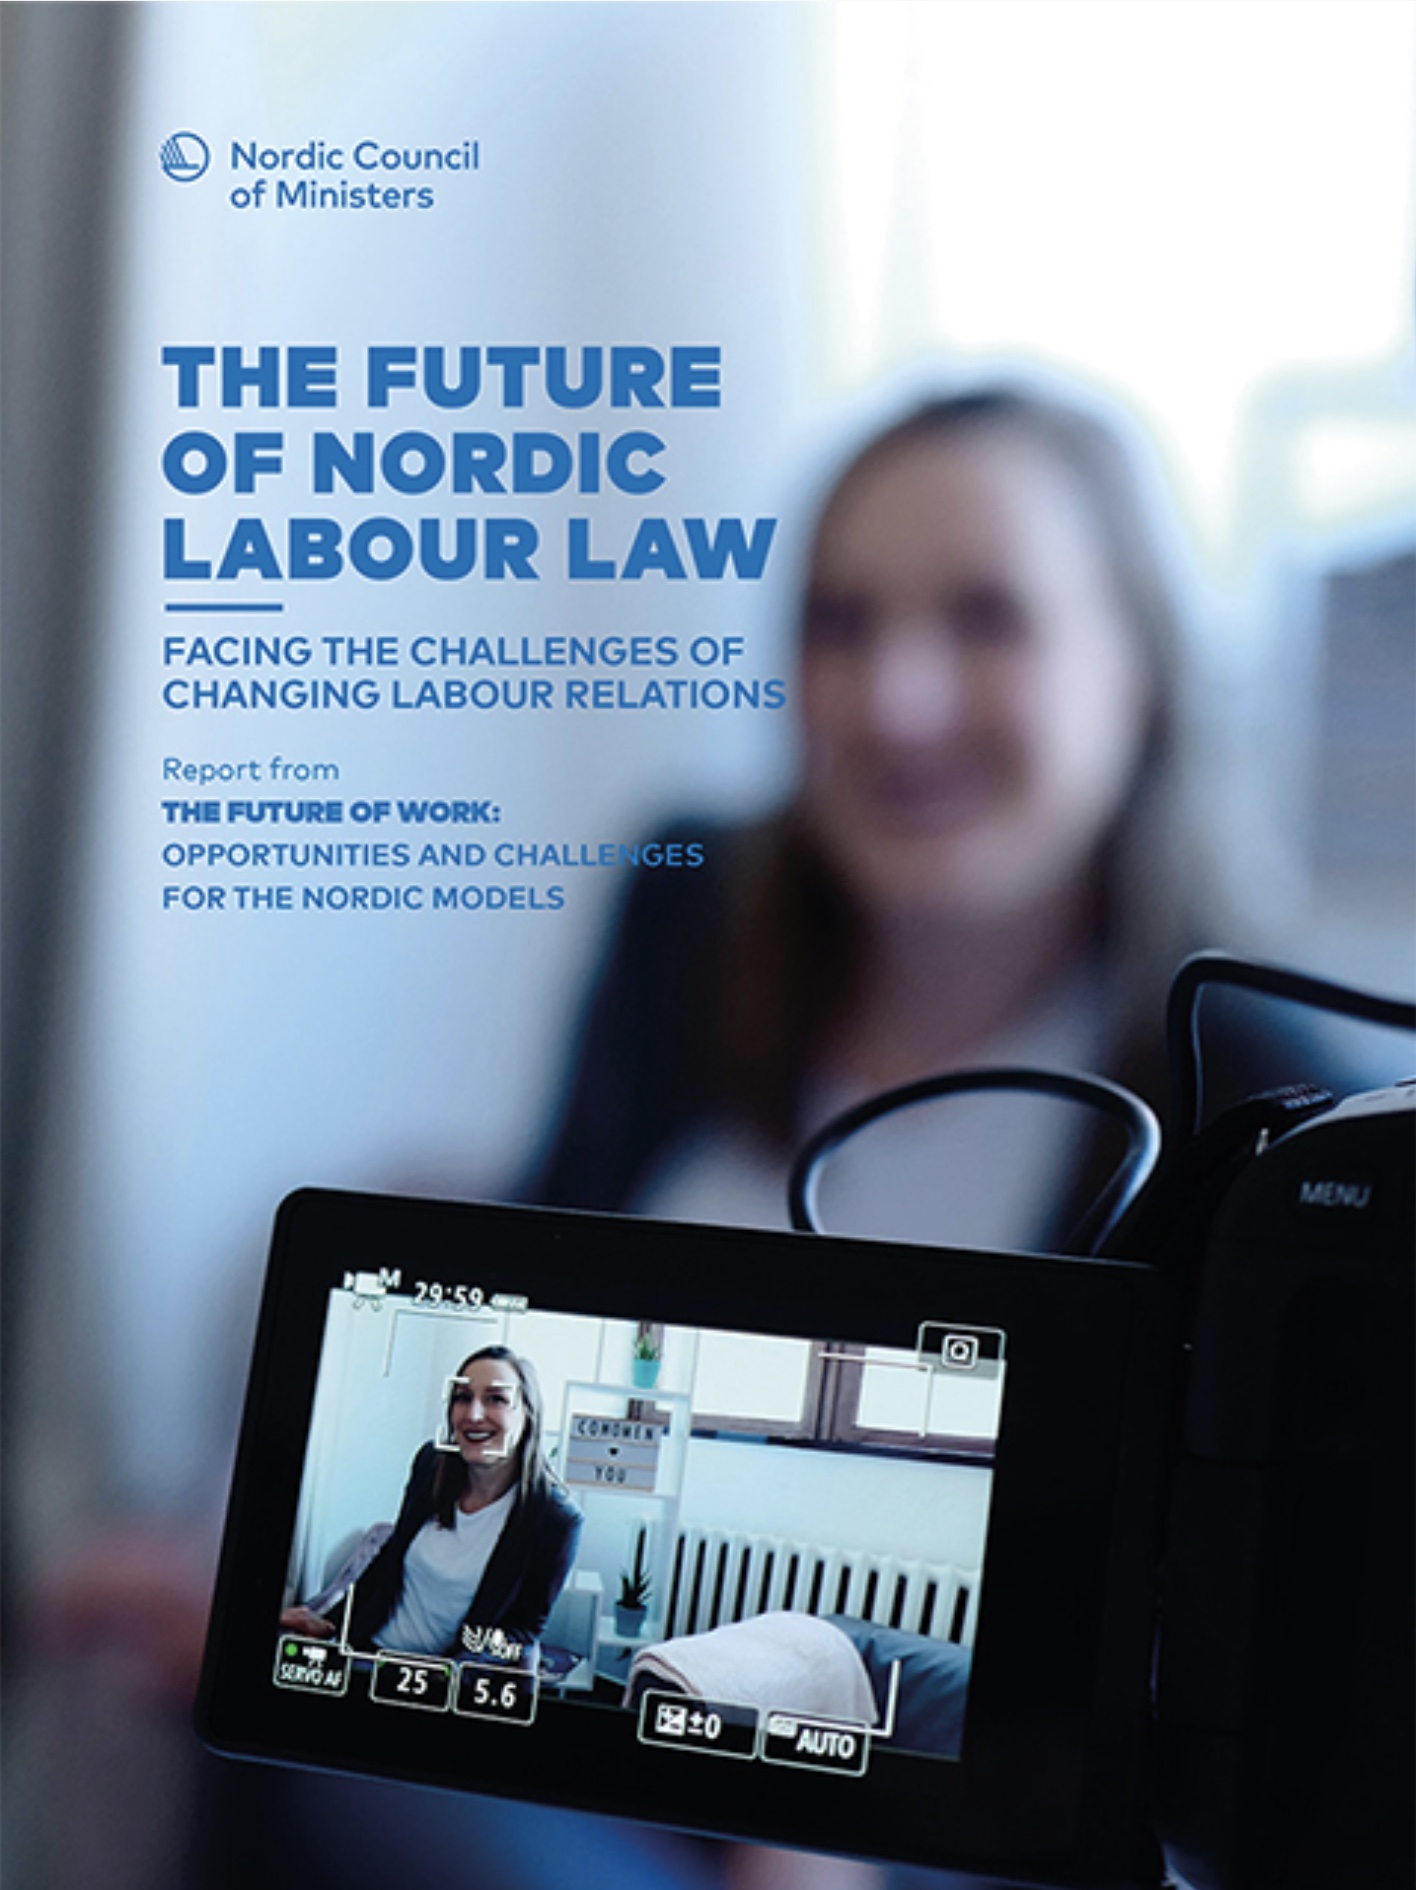 Labour law report